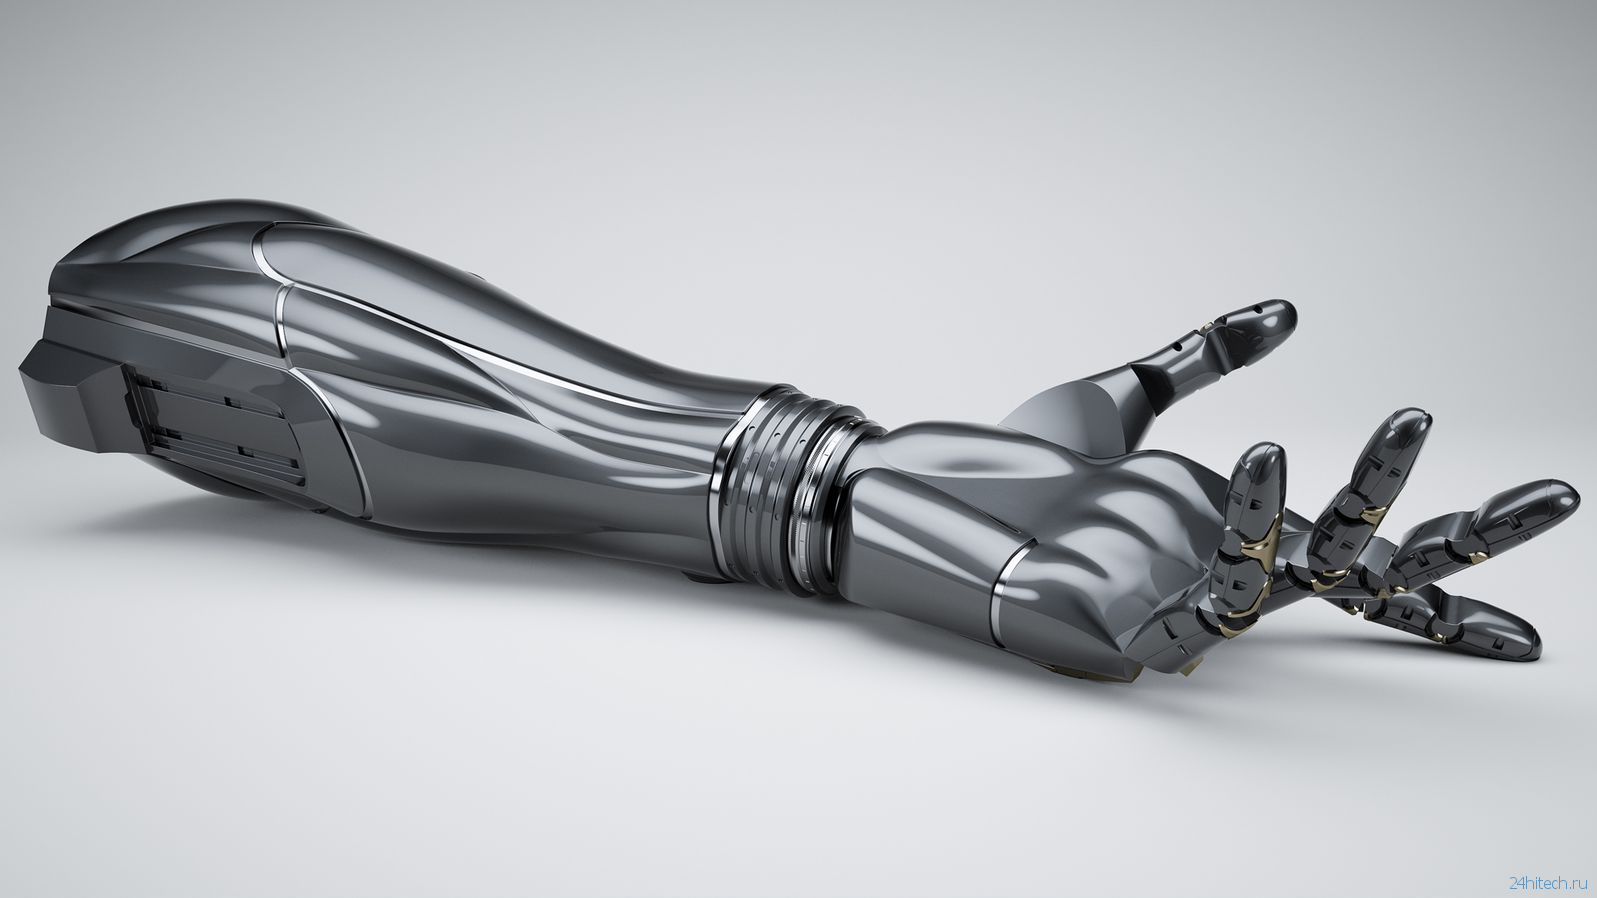 prosthetic limbs past present and future While new materials and technologies have certainly modernized prosthetics over the past century, the basic components of prosthetic limbs remain the same let's go over some of these the pylon is the internal frame or skeleton of the prosthetic limb.